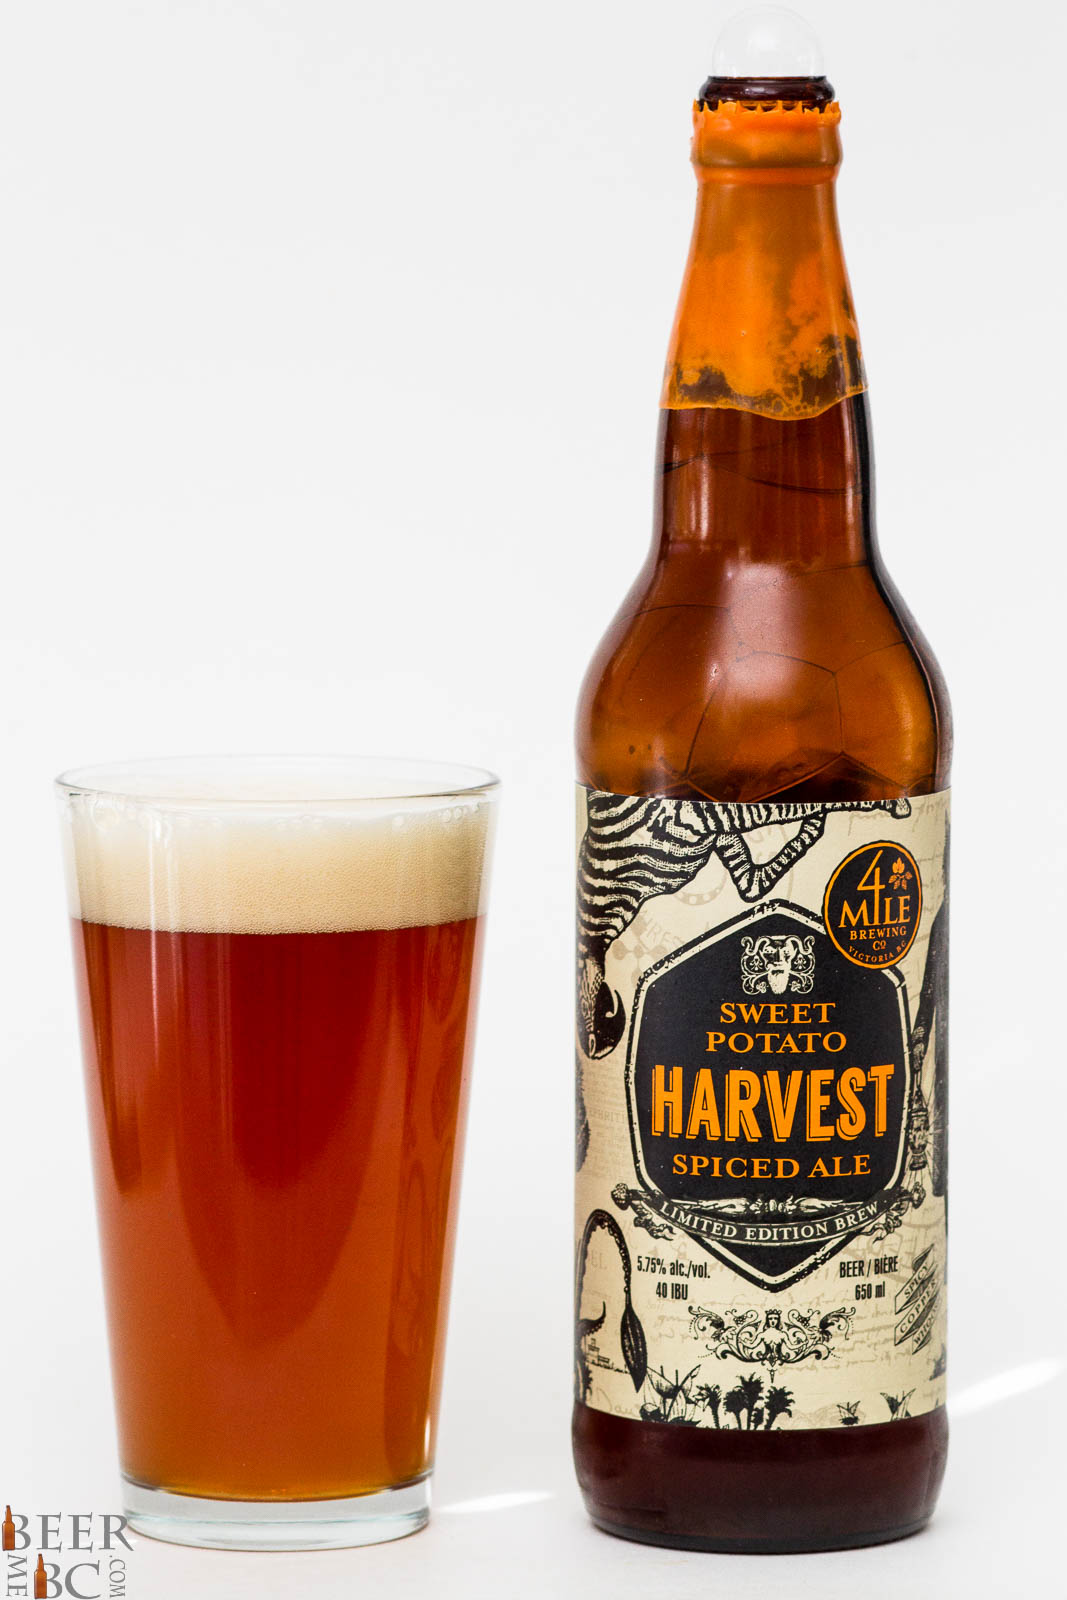 4 Mile Brewing Co Sweet Potato Harvest Spiced Ale